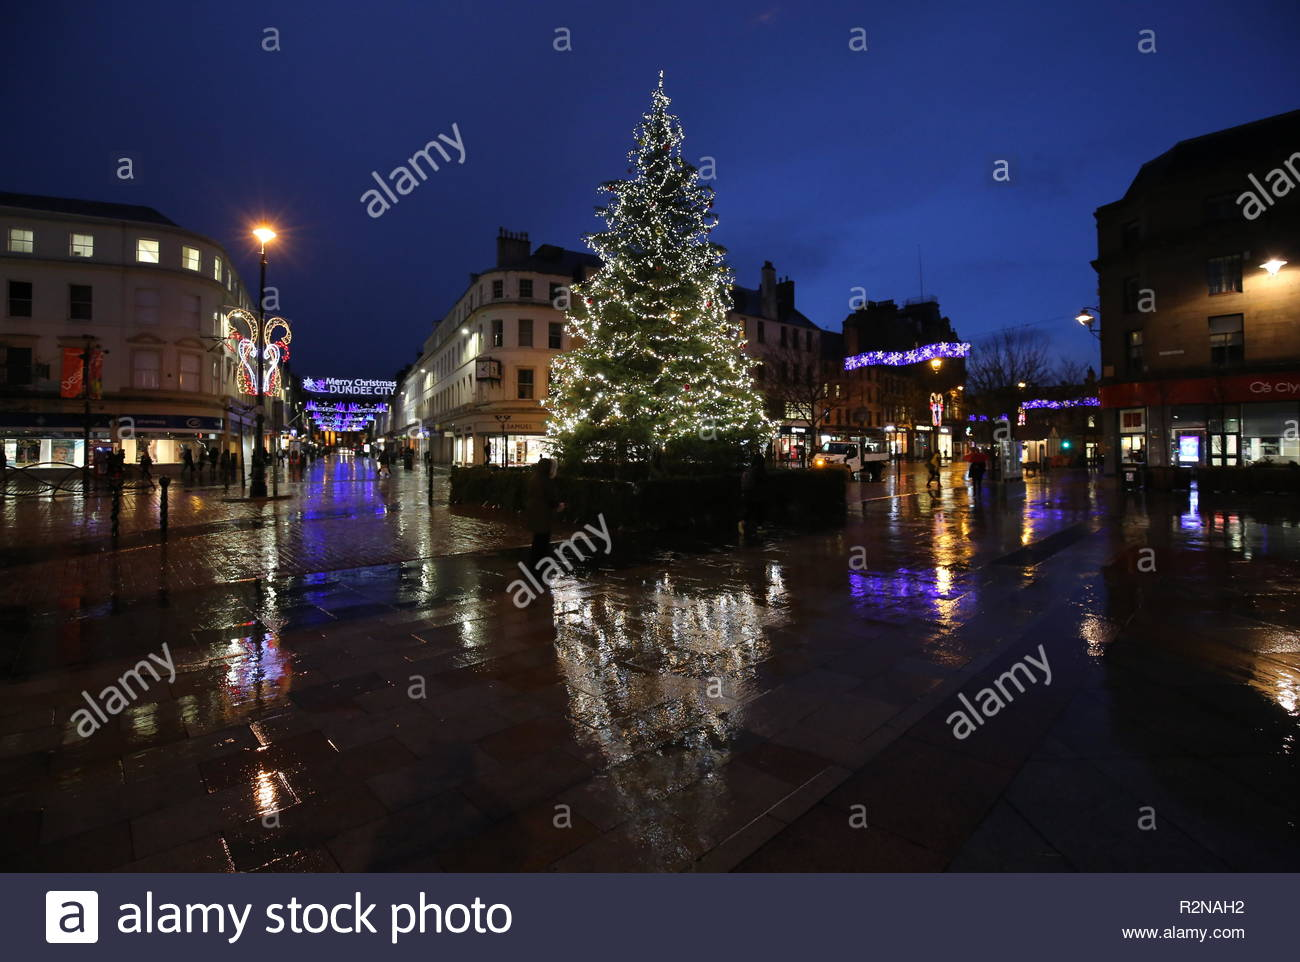 Dundee, UK. 20th November 2018. Christmas decorations in City Square Dundee after a wet and windy day in Tayside. Credit: Stephen Finn/Alamy Live News Stock Photo